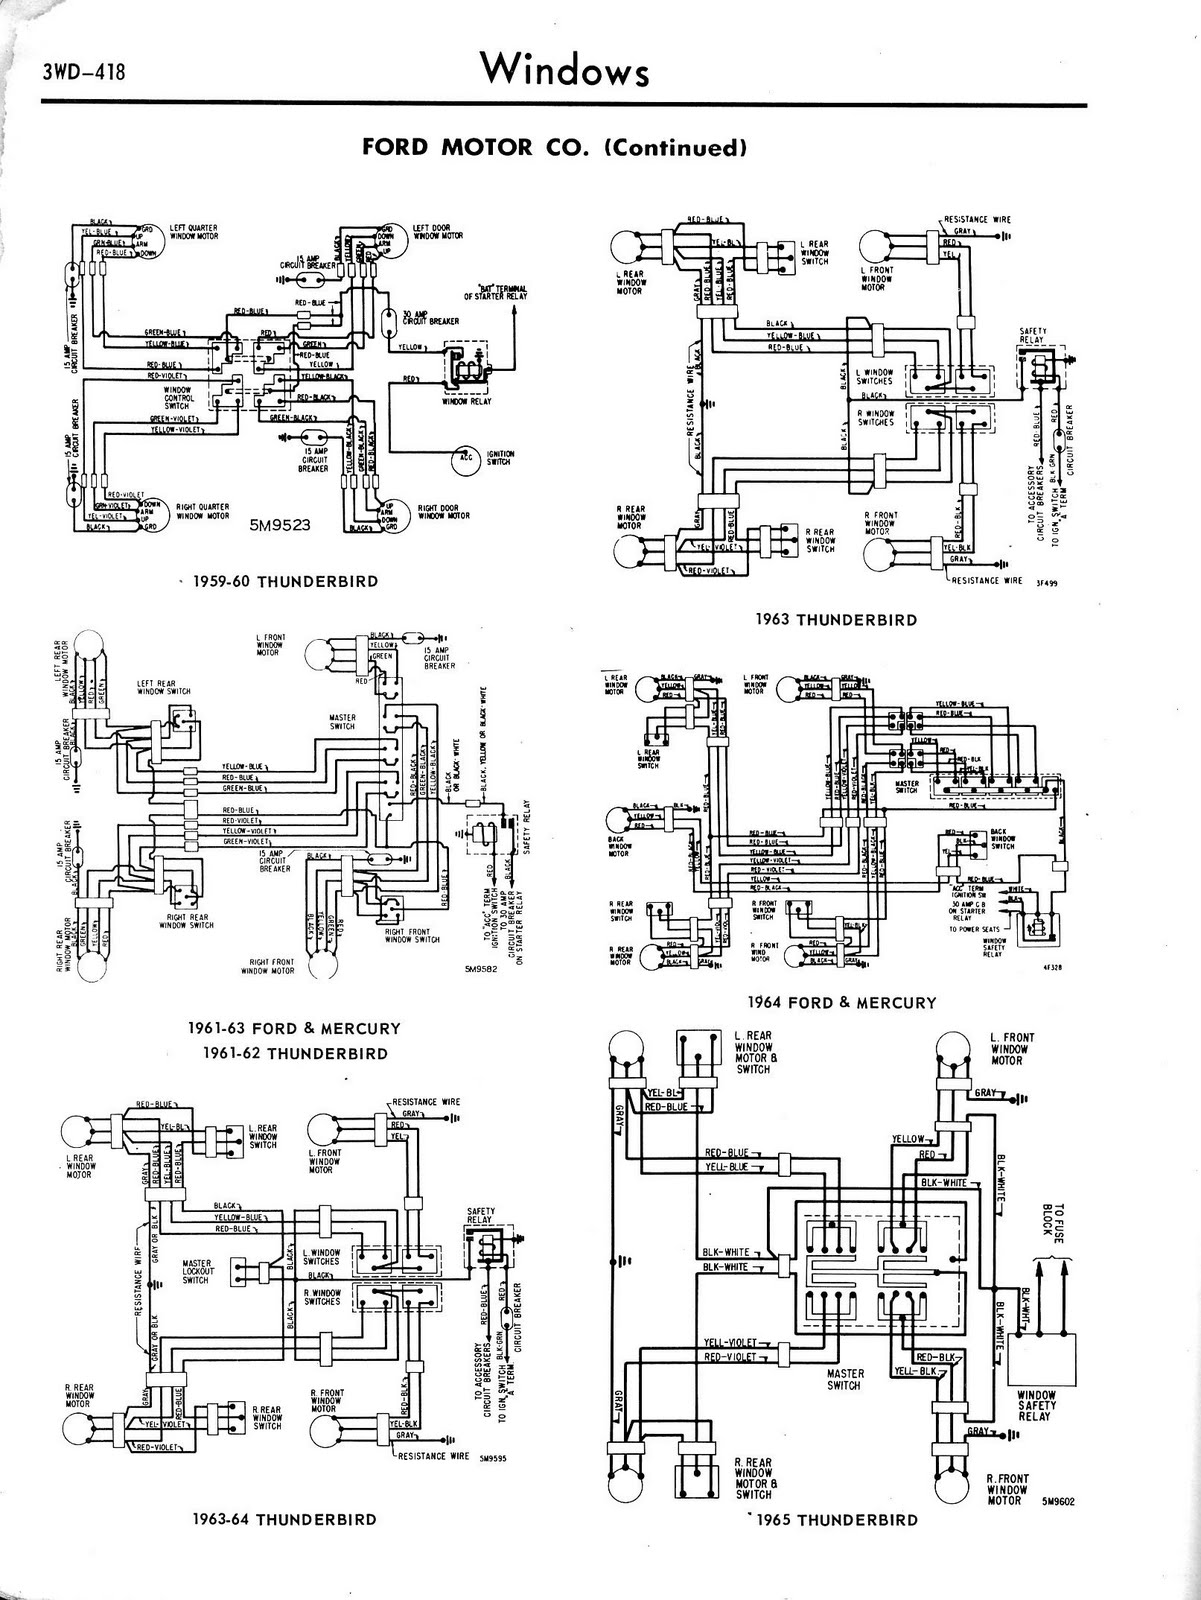 2006 Gto Radio Wiring Harness Electrical Diagrams Mitsubishi 3000gt Ignition Diagram Power Windows Schematic Transmission Cooler